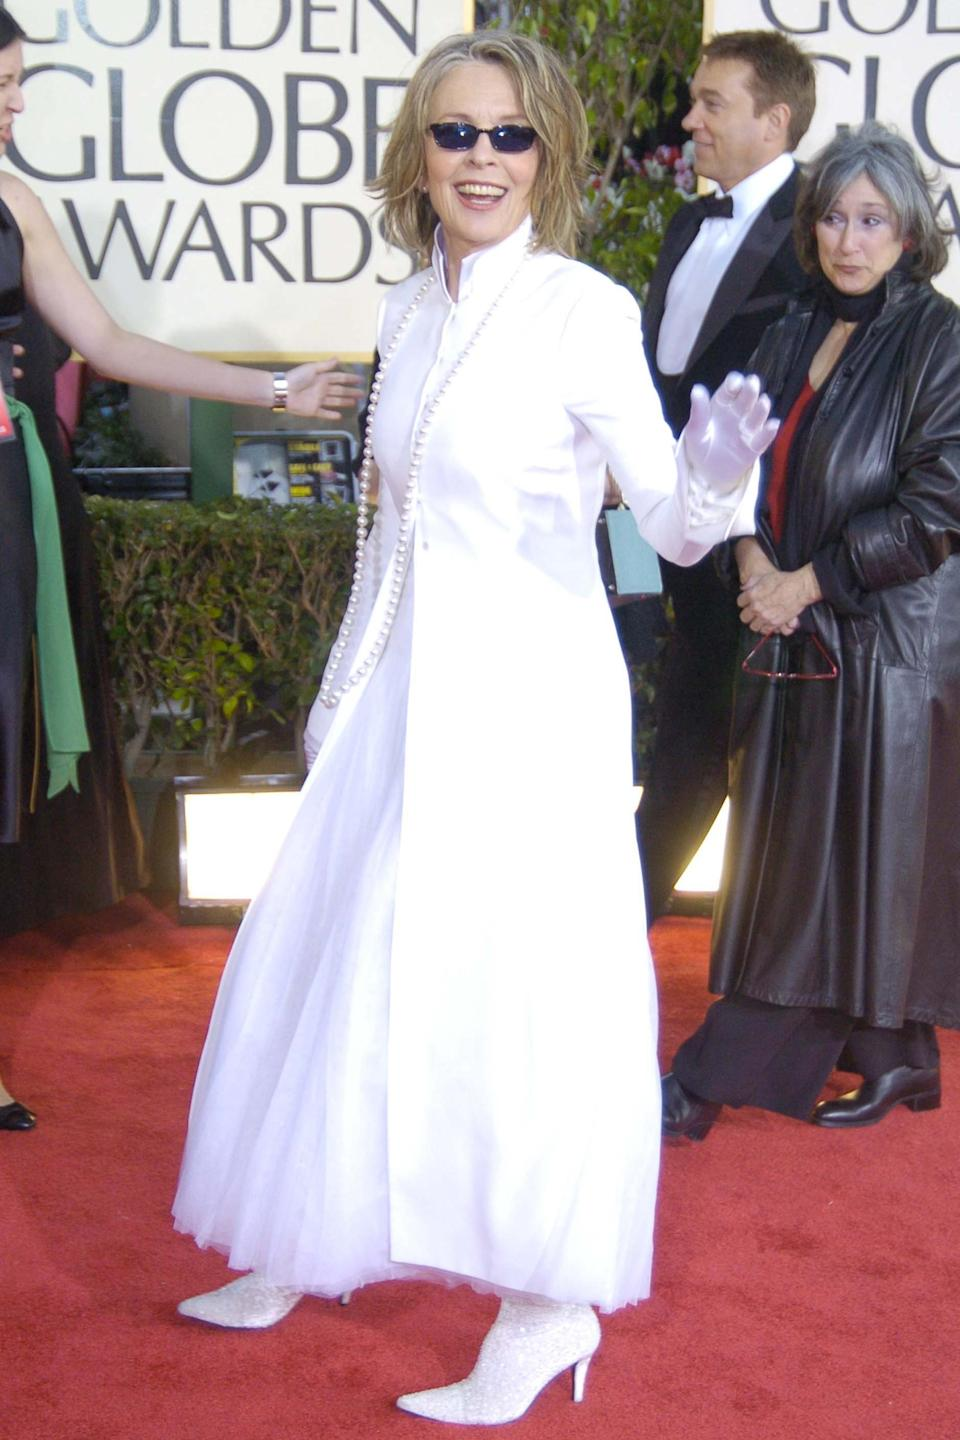 """<strong><h2>2004</h2></strong><br>While this look might not have garnered very much appreciation back in '04, in 2019, we're tipping our hats to the master of menswear, Diane Keaton, for showing up to the Golden Globes donning a collared white coat, itty bitty sunglasses and sequin boots.<br><br><em>Diane Keaton in Nehru-collared white coat. </em><span class=""""copyright"""">Photo: Jeff Kravitz/FilmMagic, Inc.</span>"""